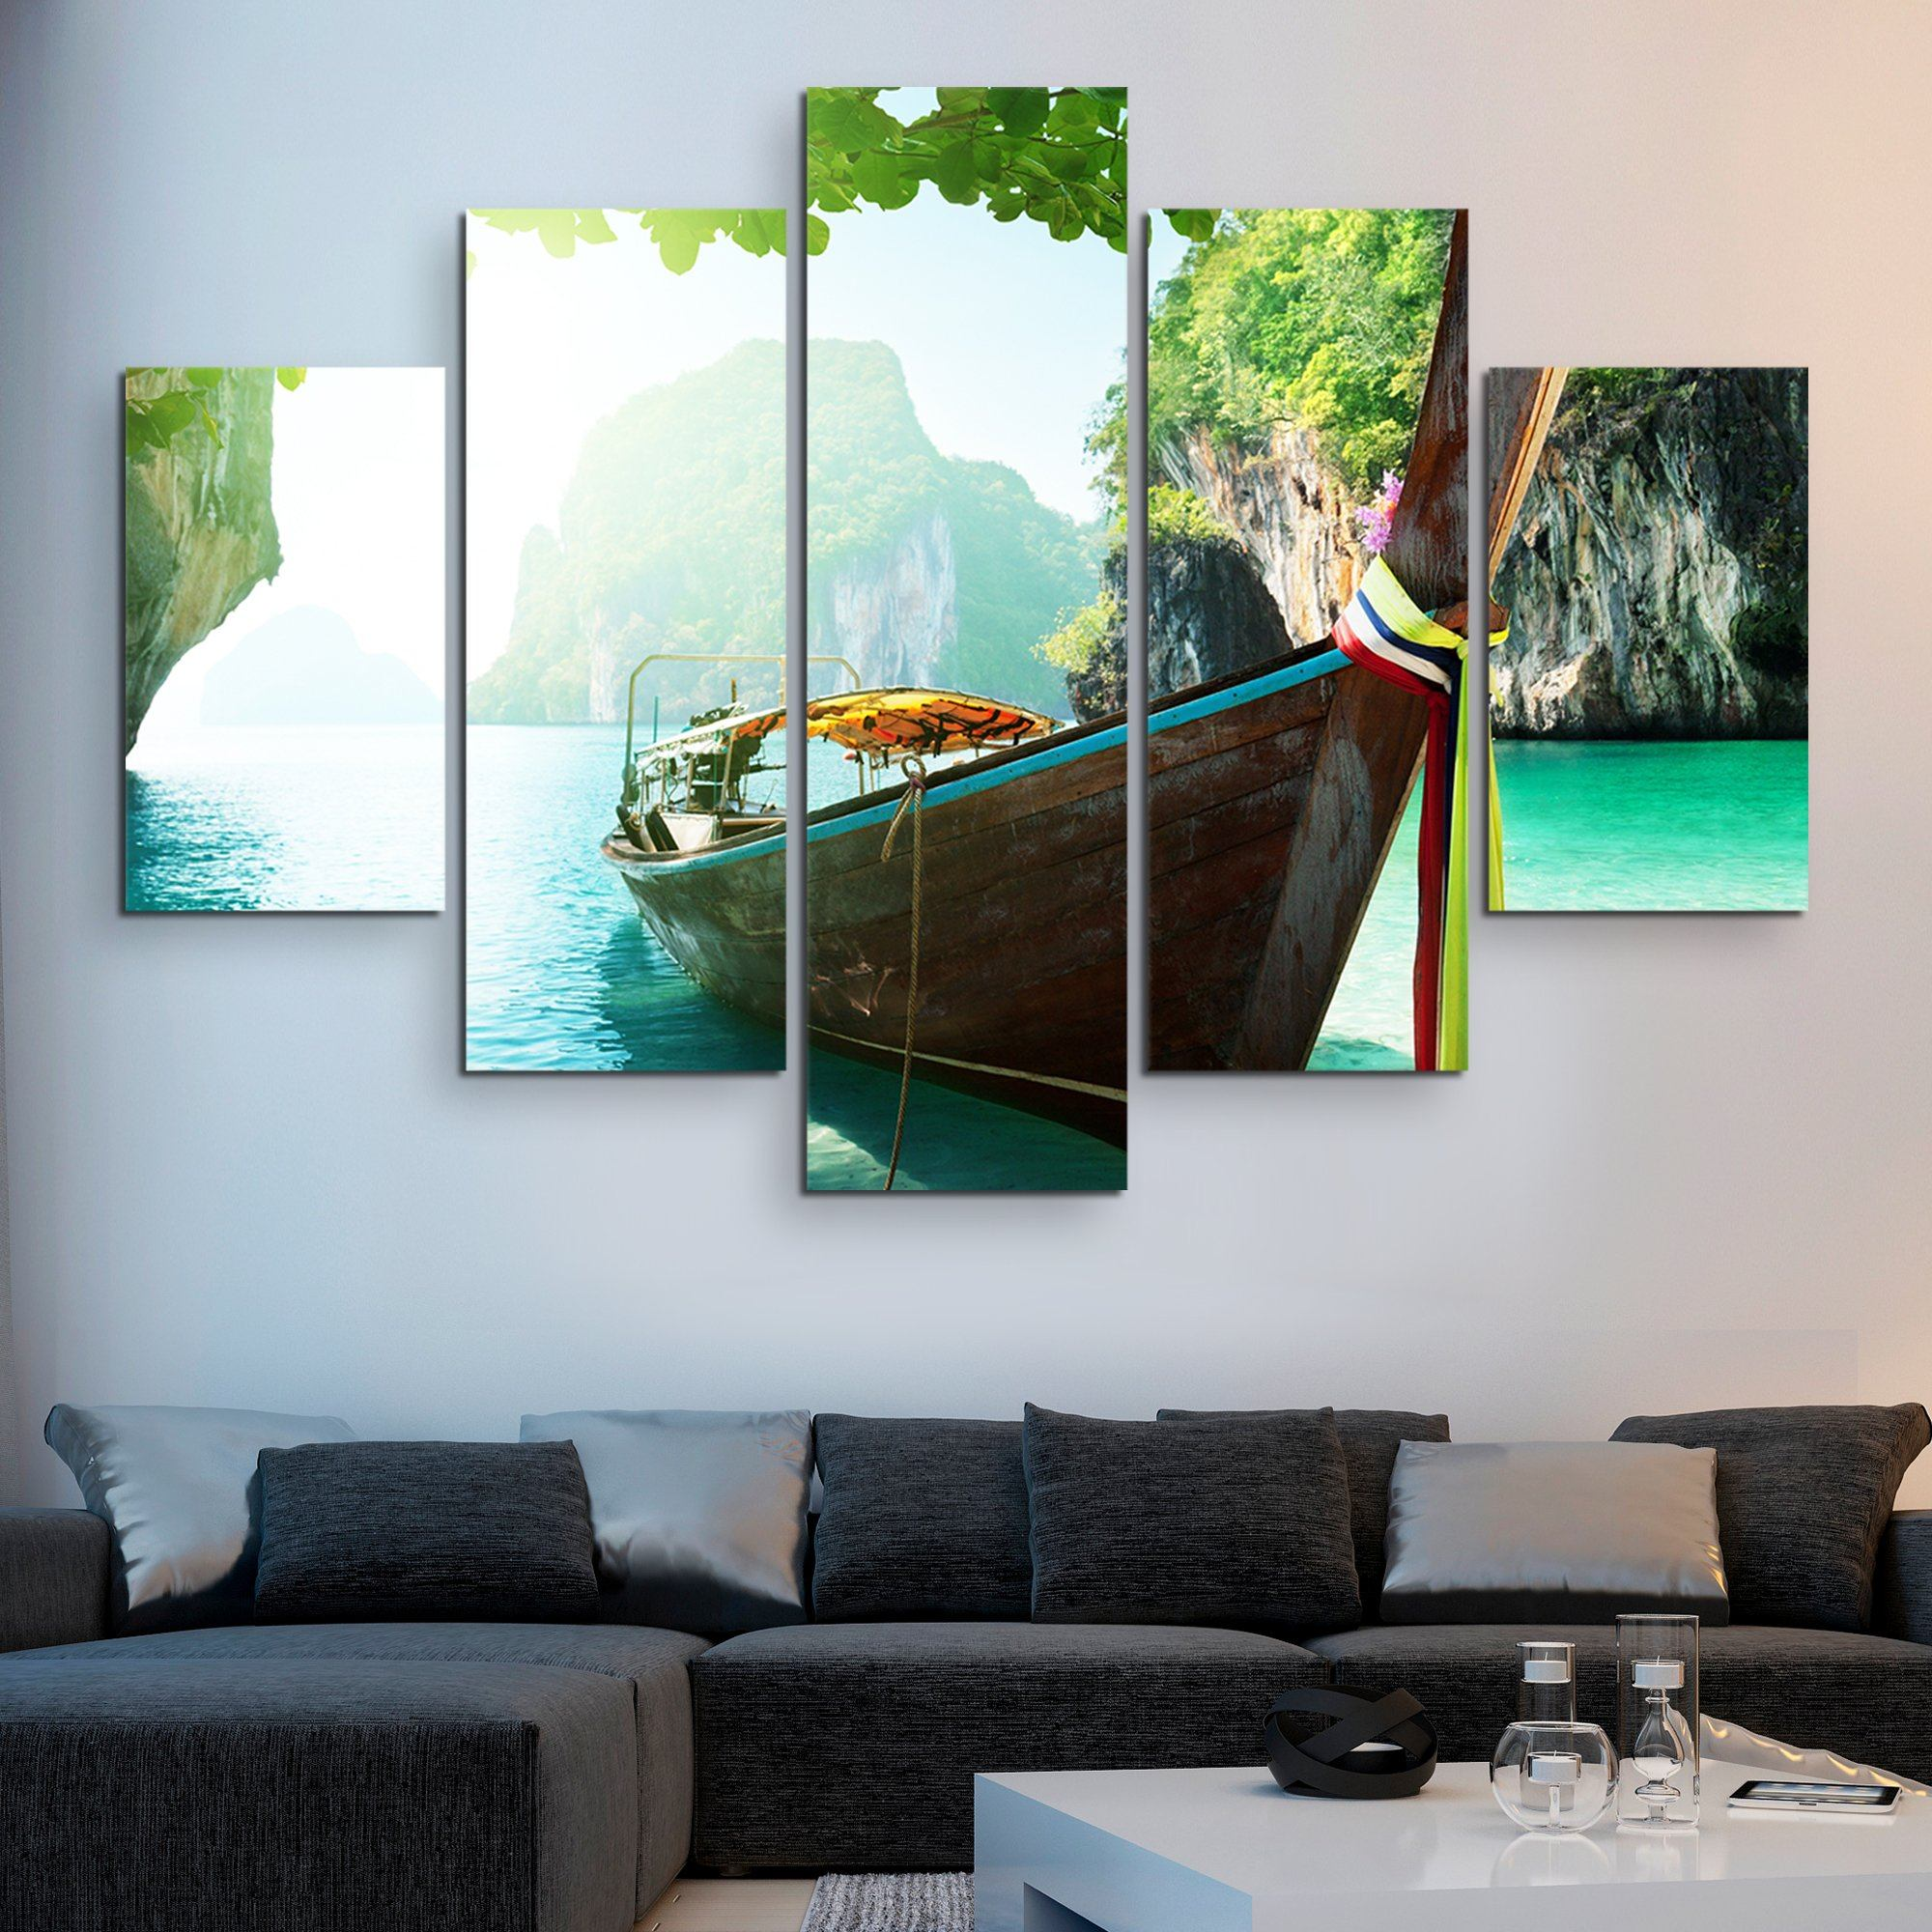 5 piece Andaman Islands wall art